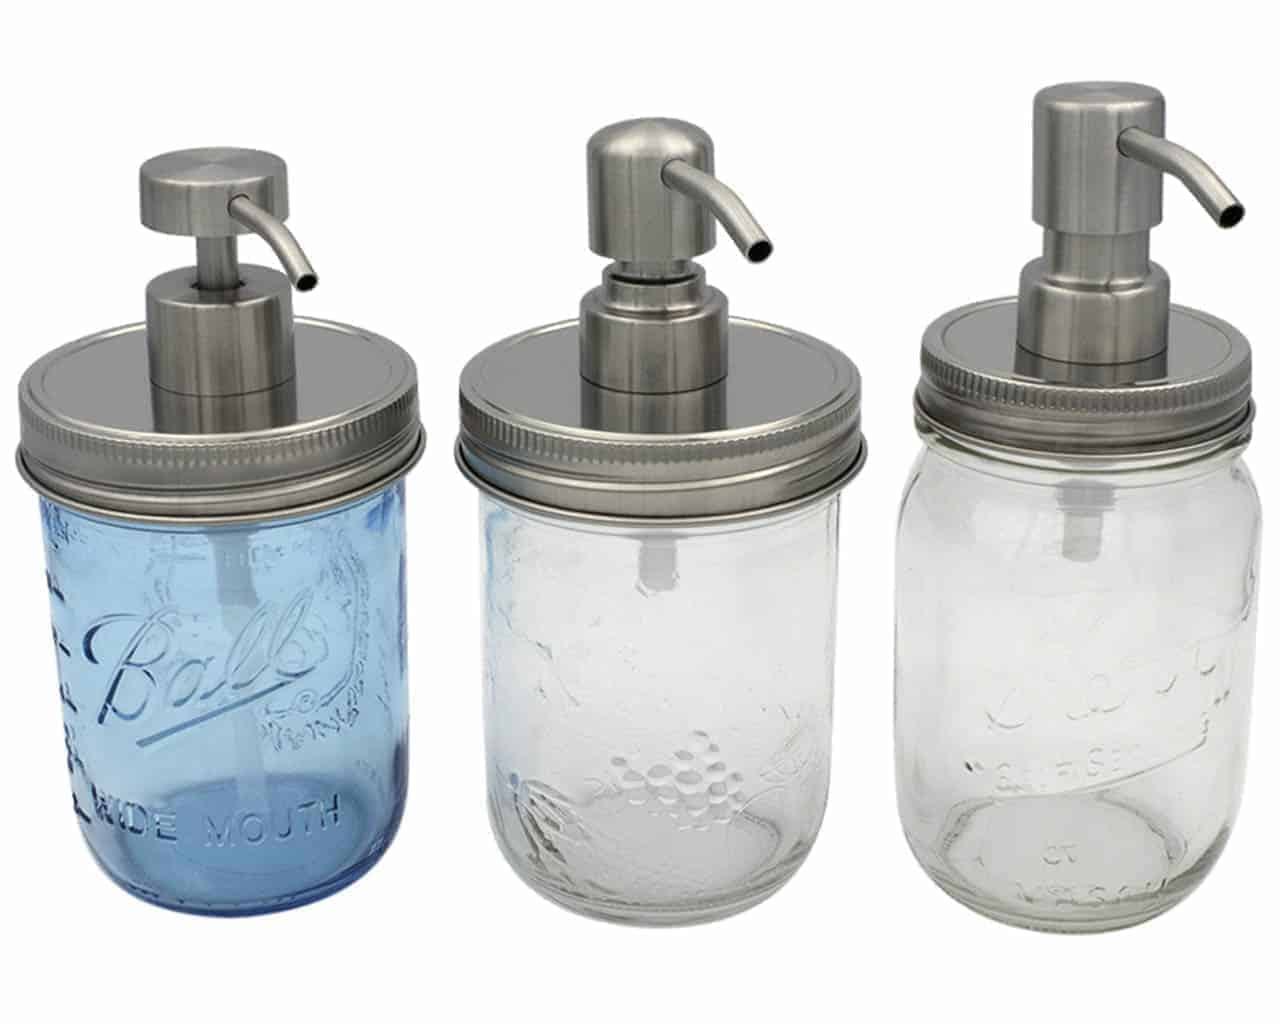 Satin Brushed Finish Soap Pump Dispensers For Mason Jars